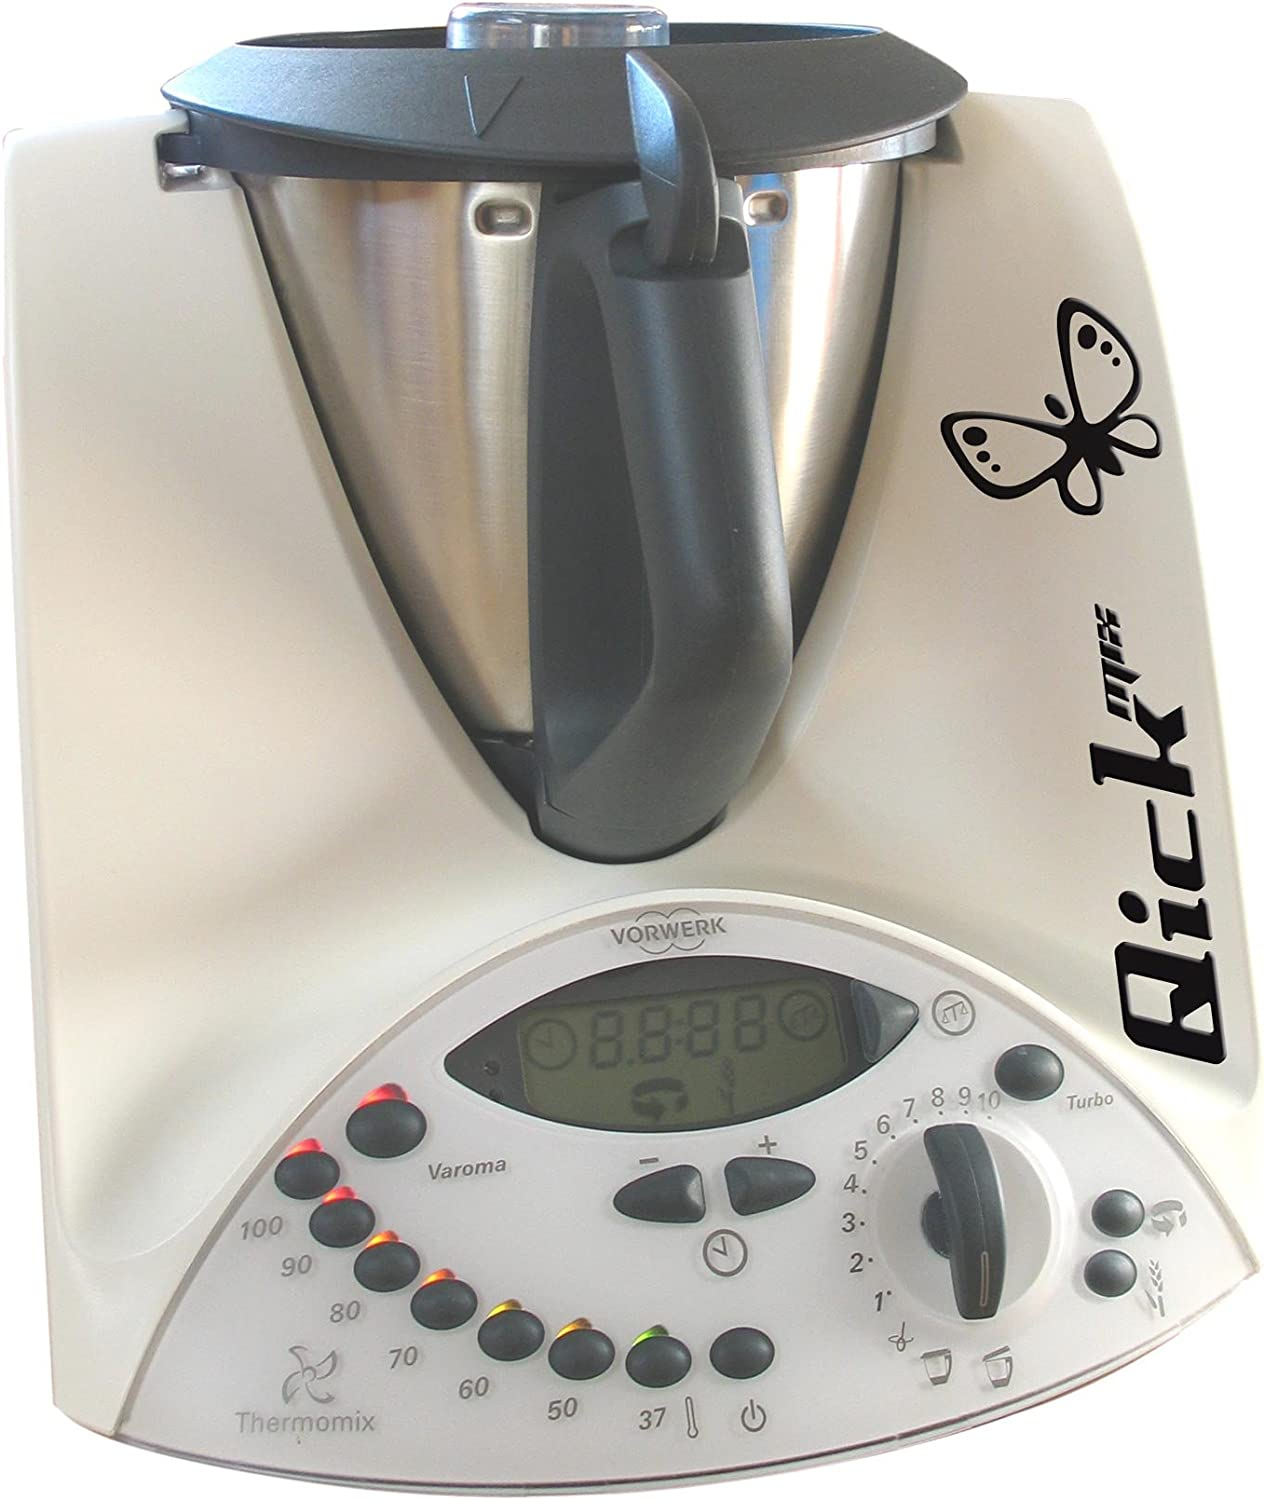 Adhesivo es compatible con Thermomix TM31 Quickmix - mariposa - vinilo: Amazon.es